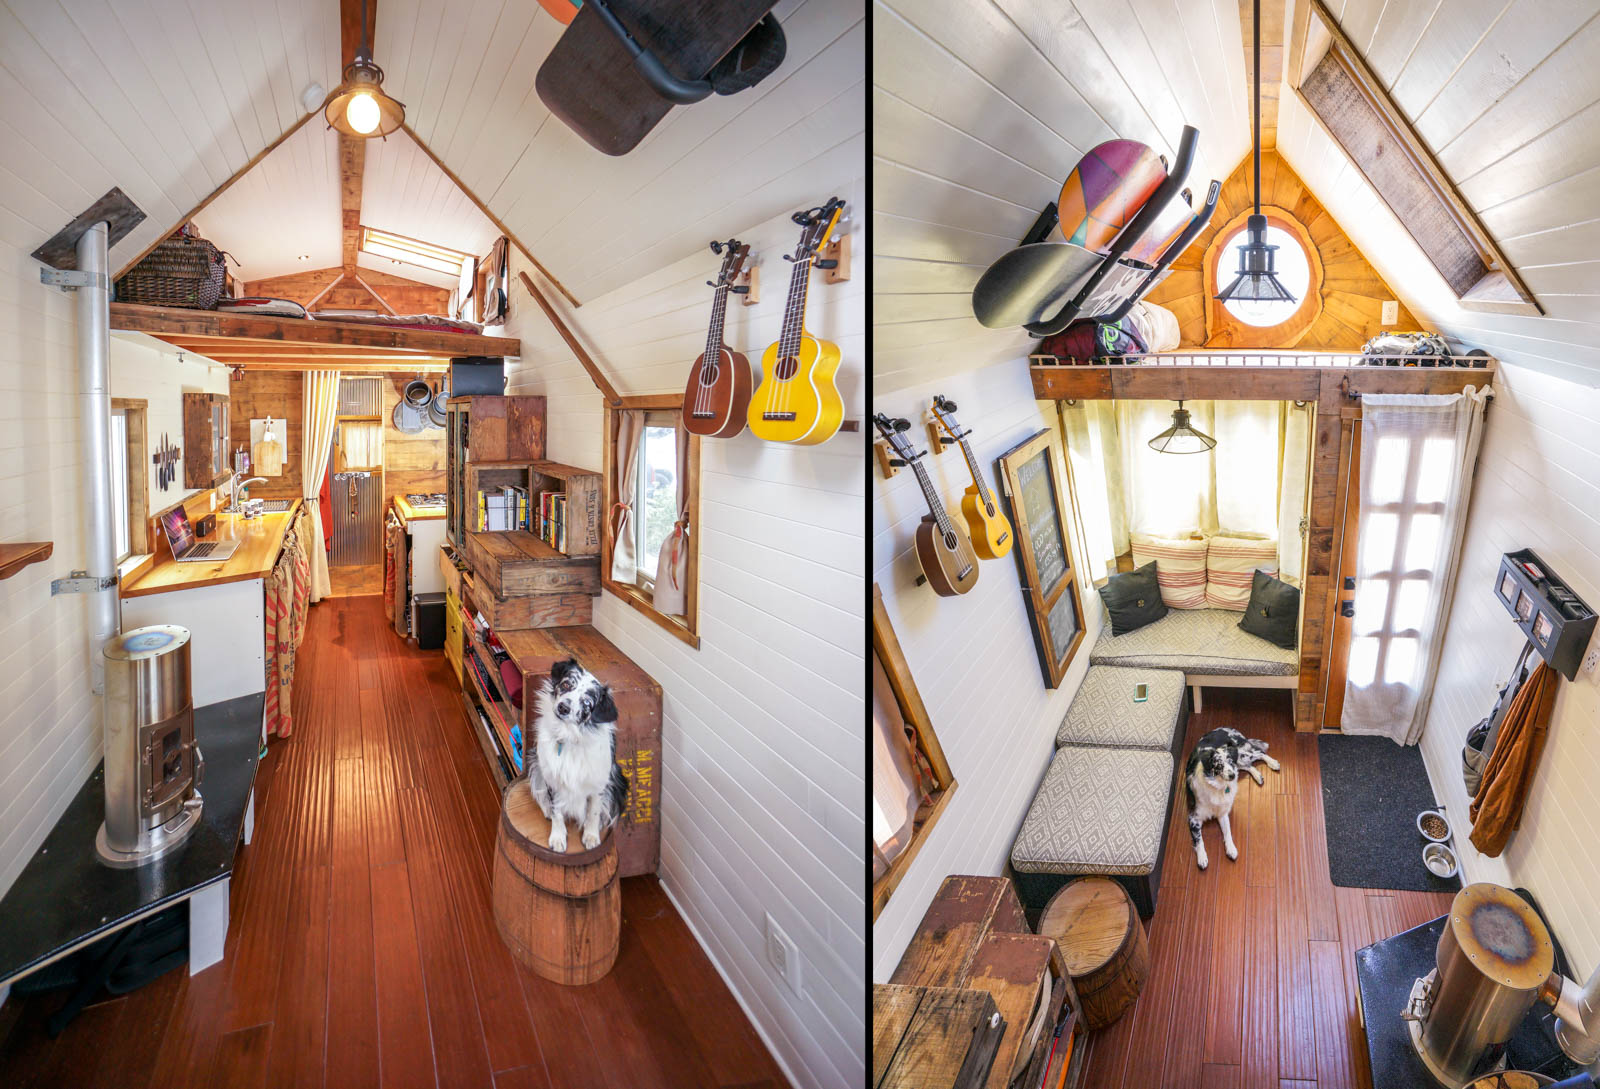 thgj interiorjpg - Tiny House Trailer Interior